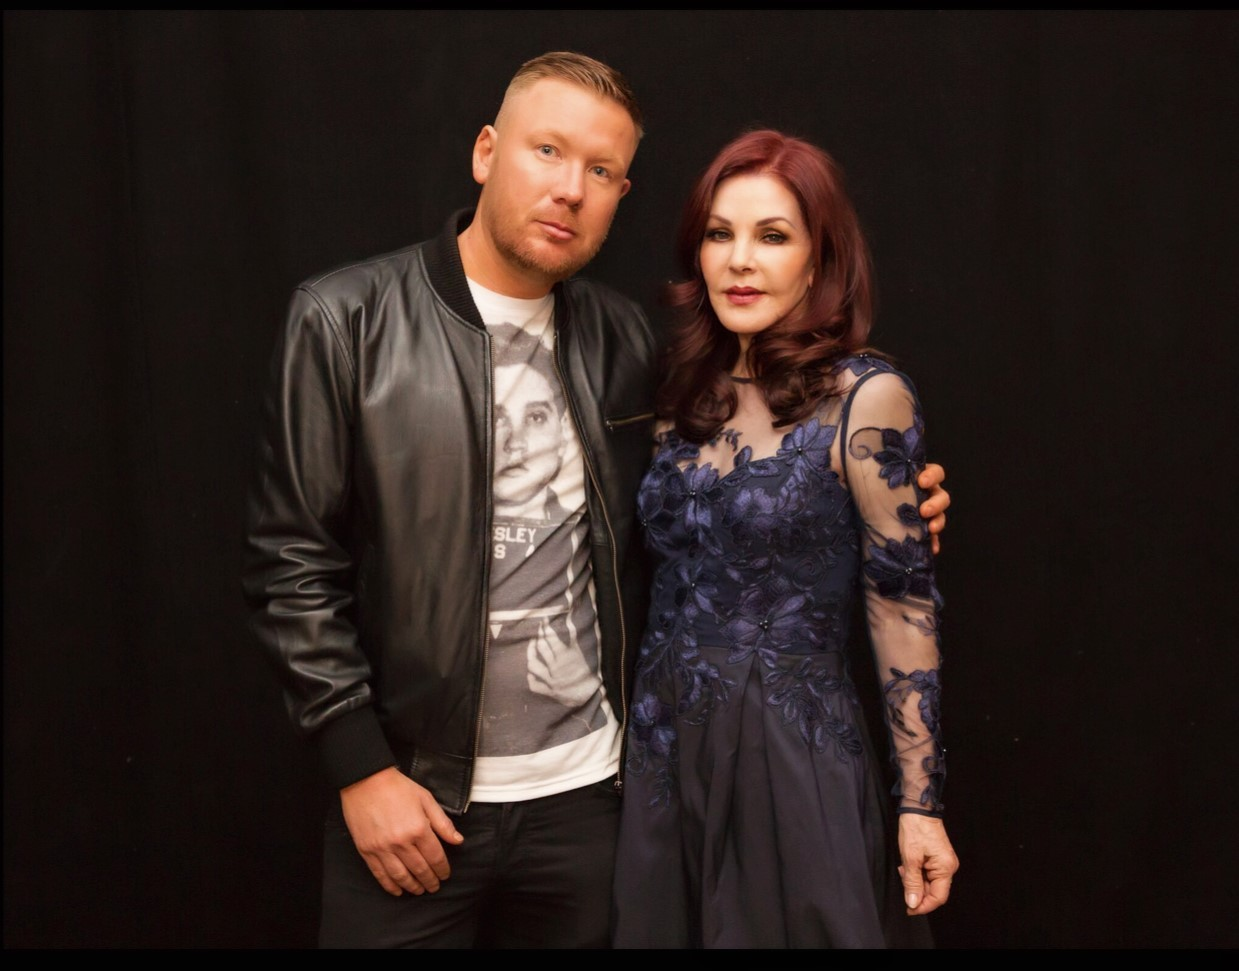 Ray Tigwell and Priscilla Presley at The O2